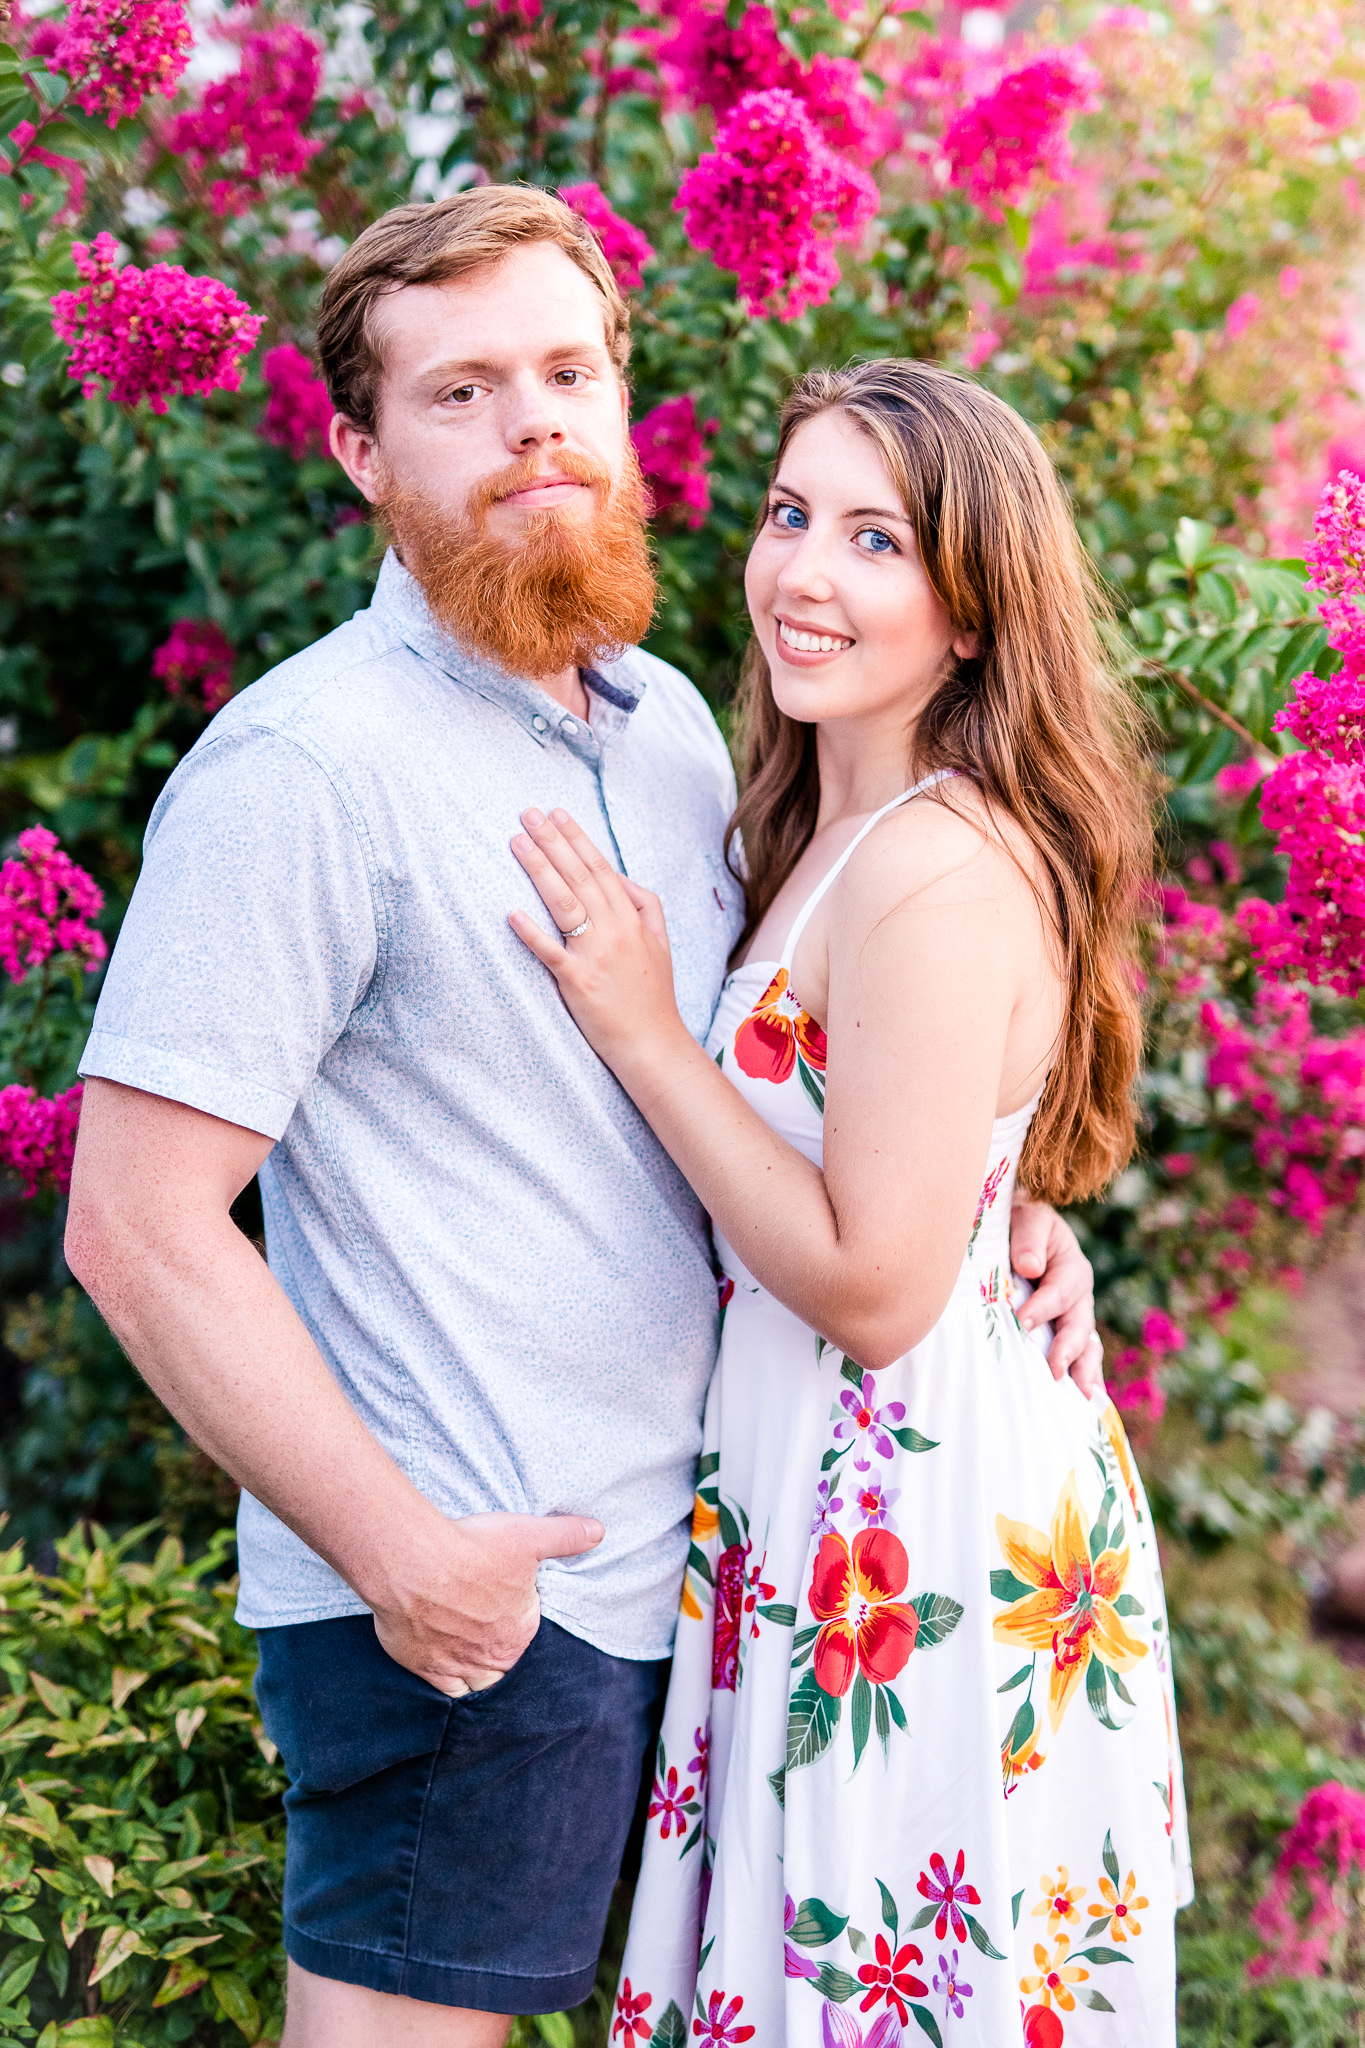 An engaged couple poses next to a flowering tree during their summer sunset engagement session in Historic Occoquan, Northern Virginia